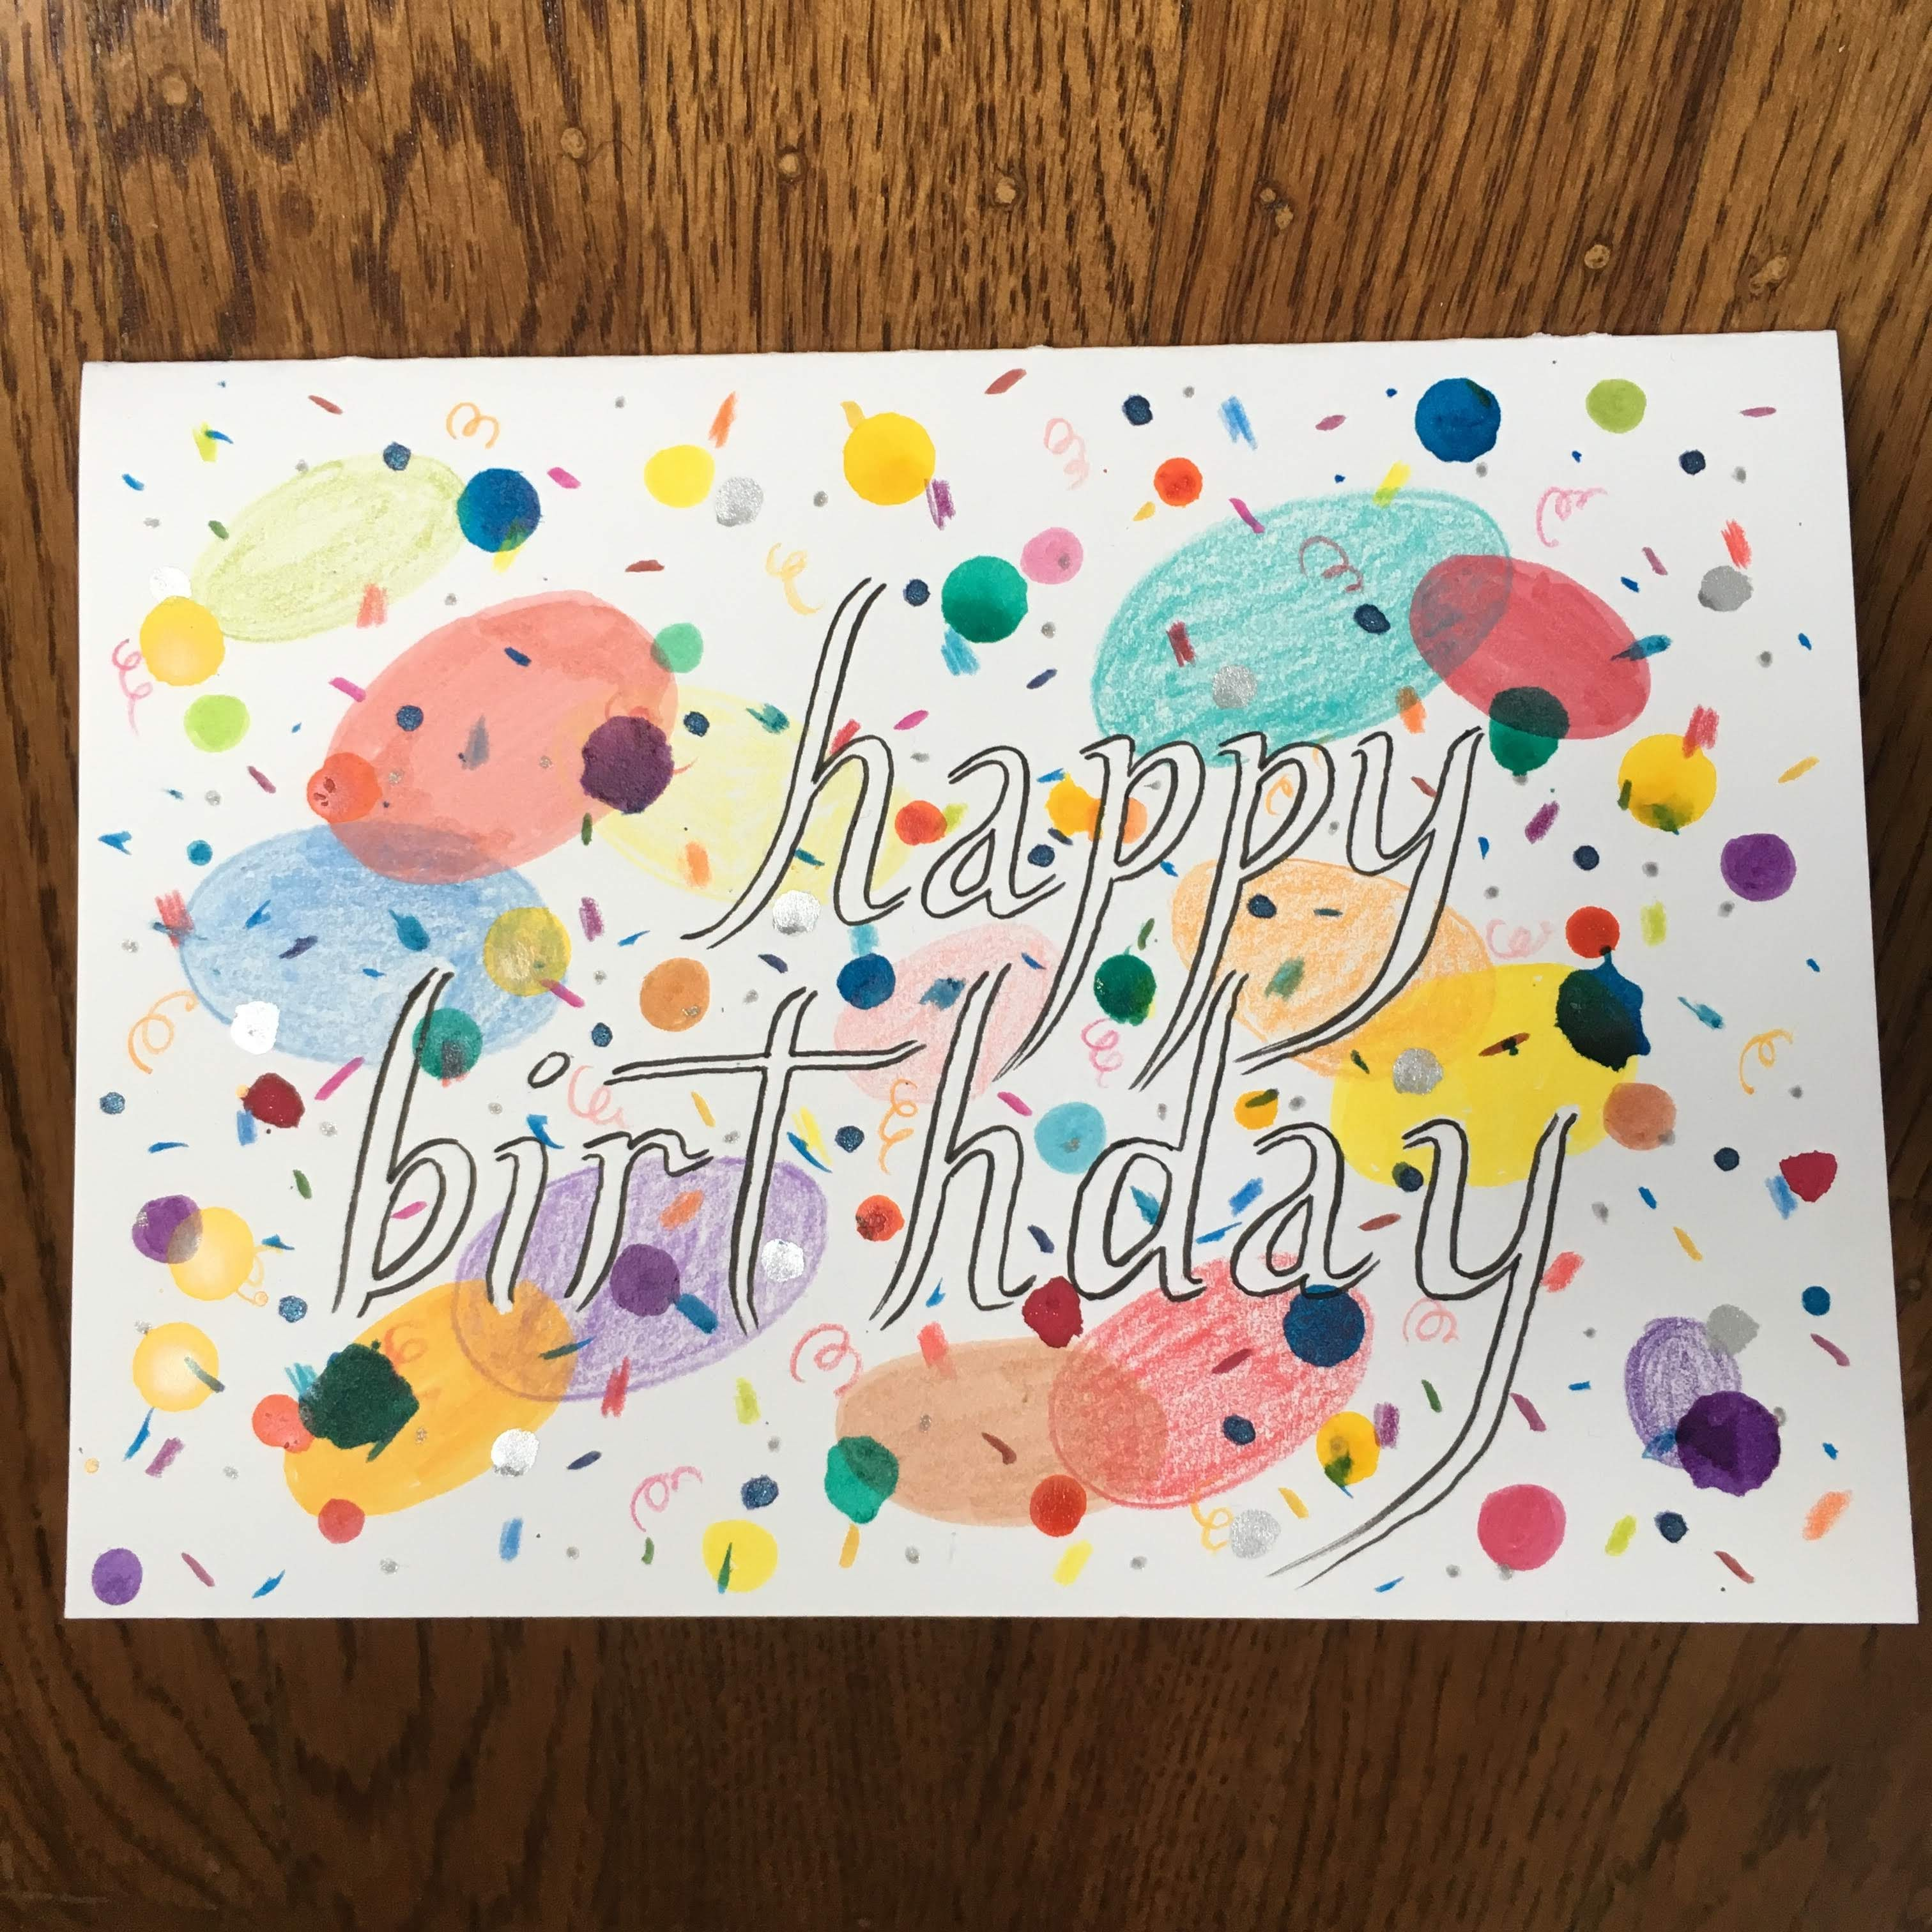 Colorful hand-drawn and painted birthday card